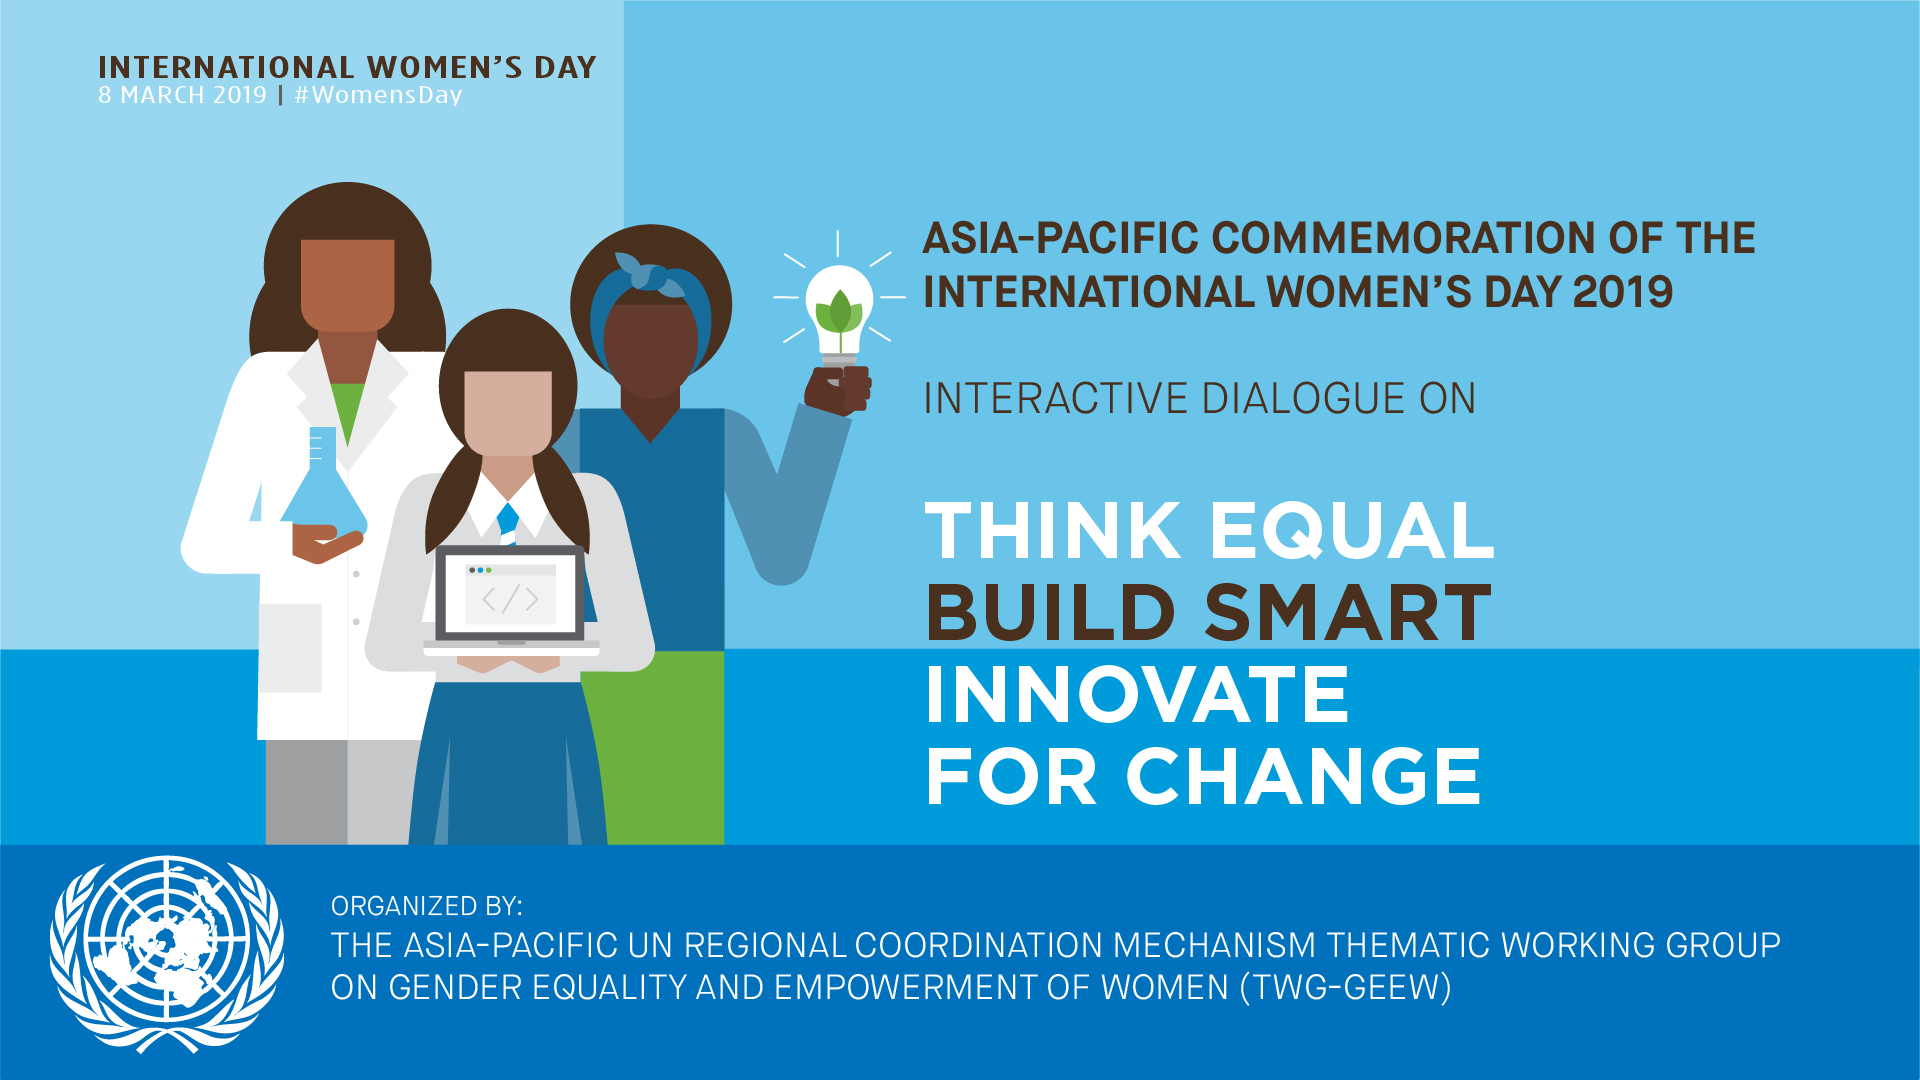 Start-ups and innovators who advance gender equality in the spotlight  at Asia-Pacific commemoration of International Women's Day 2019